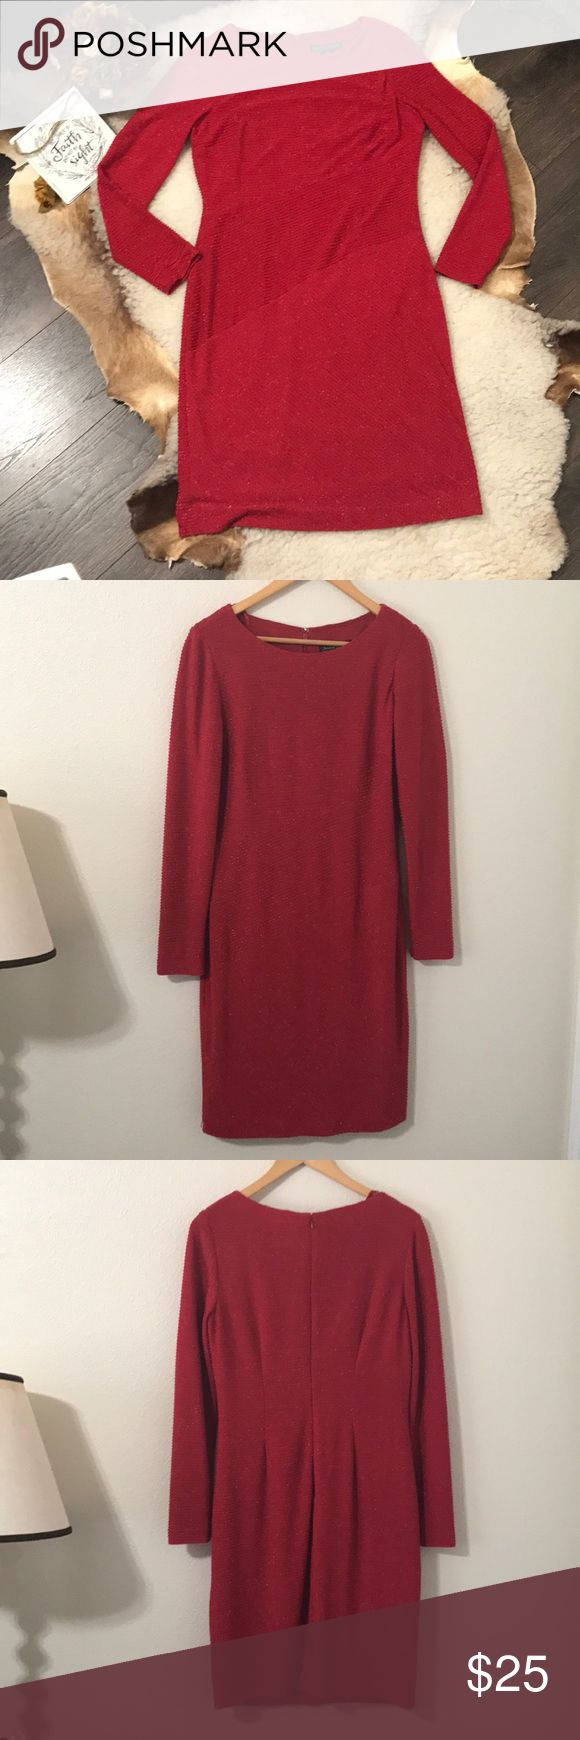 Jessica Howard Red Sparkle Dress Sz 10 Jessica Howard Red Sparkling Dress in great used condition. Perfect to wear to the office or your next event. Underlining makes it comfortable and not sheer at all. From a pet and smoke free home. Jessica Howard Dresses Long Sleeve